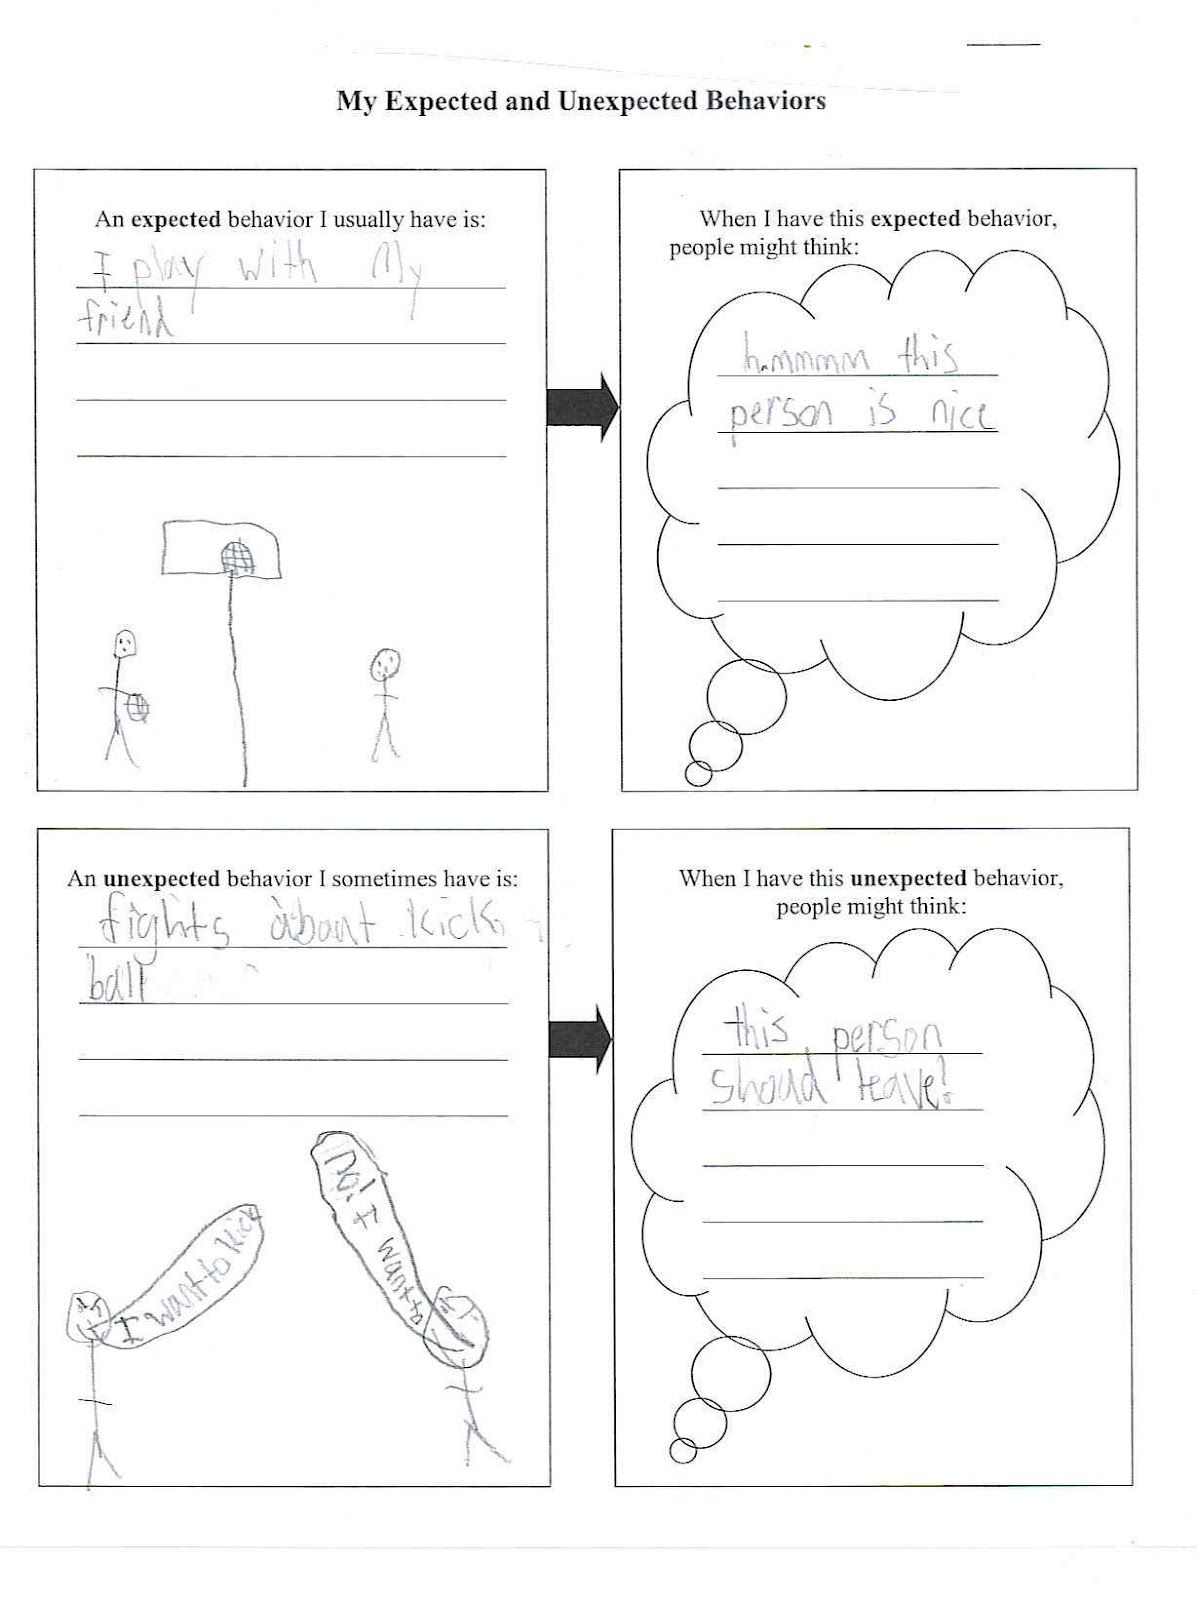 worksheet Social Thinking Worksheets dbs school counselor social thinking pinterest promote with this expectedunexpected behavior worksheet